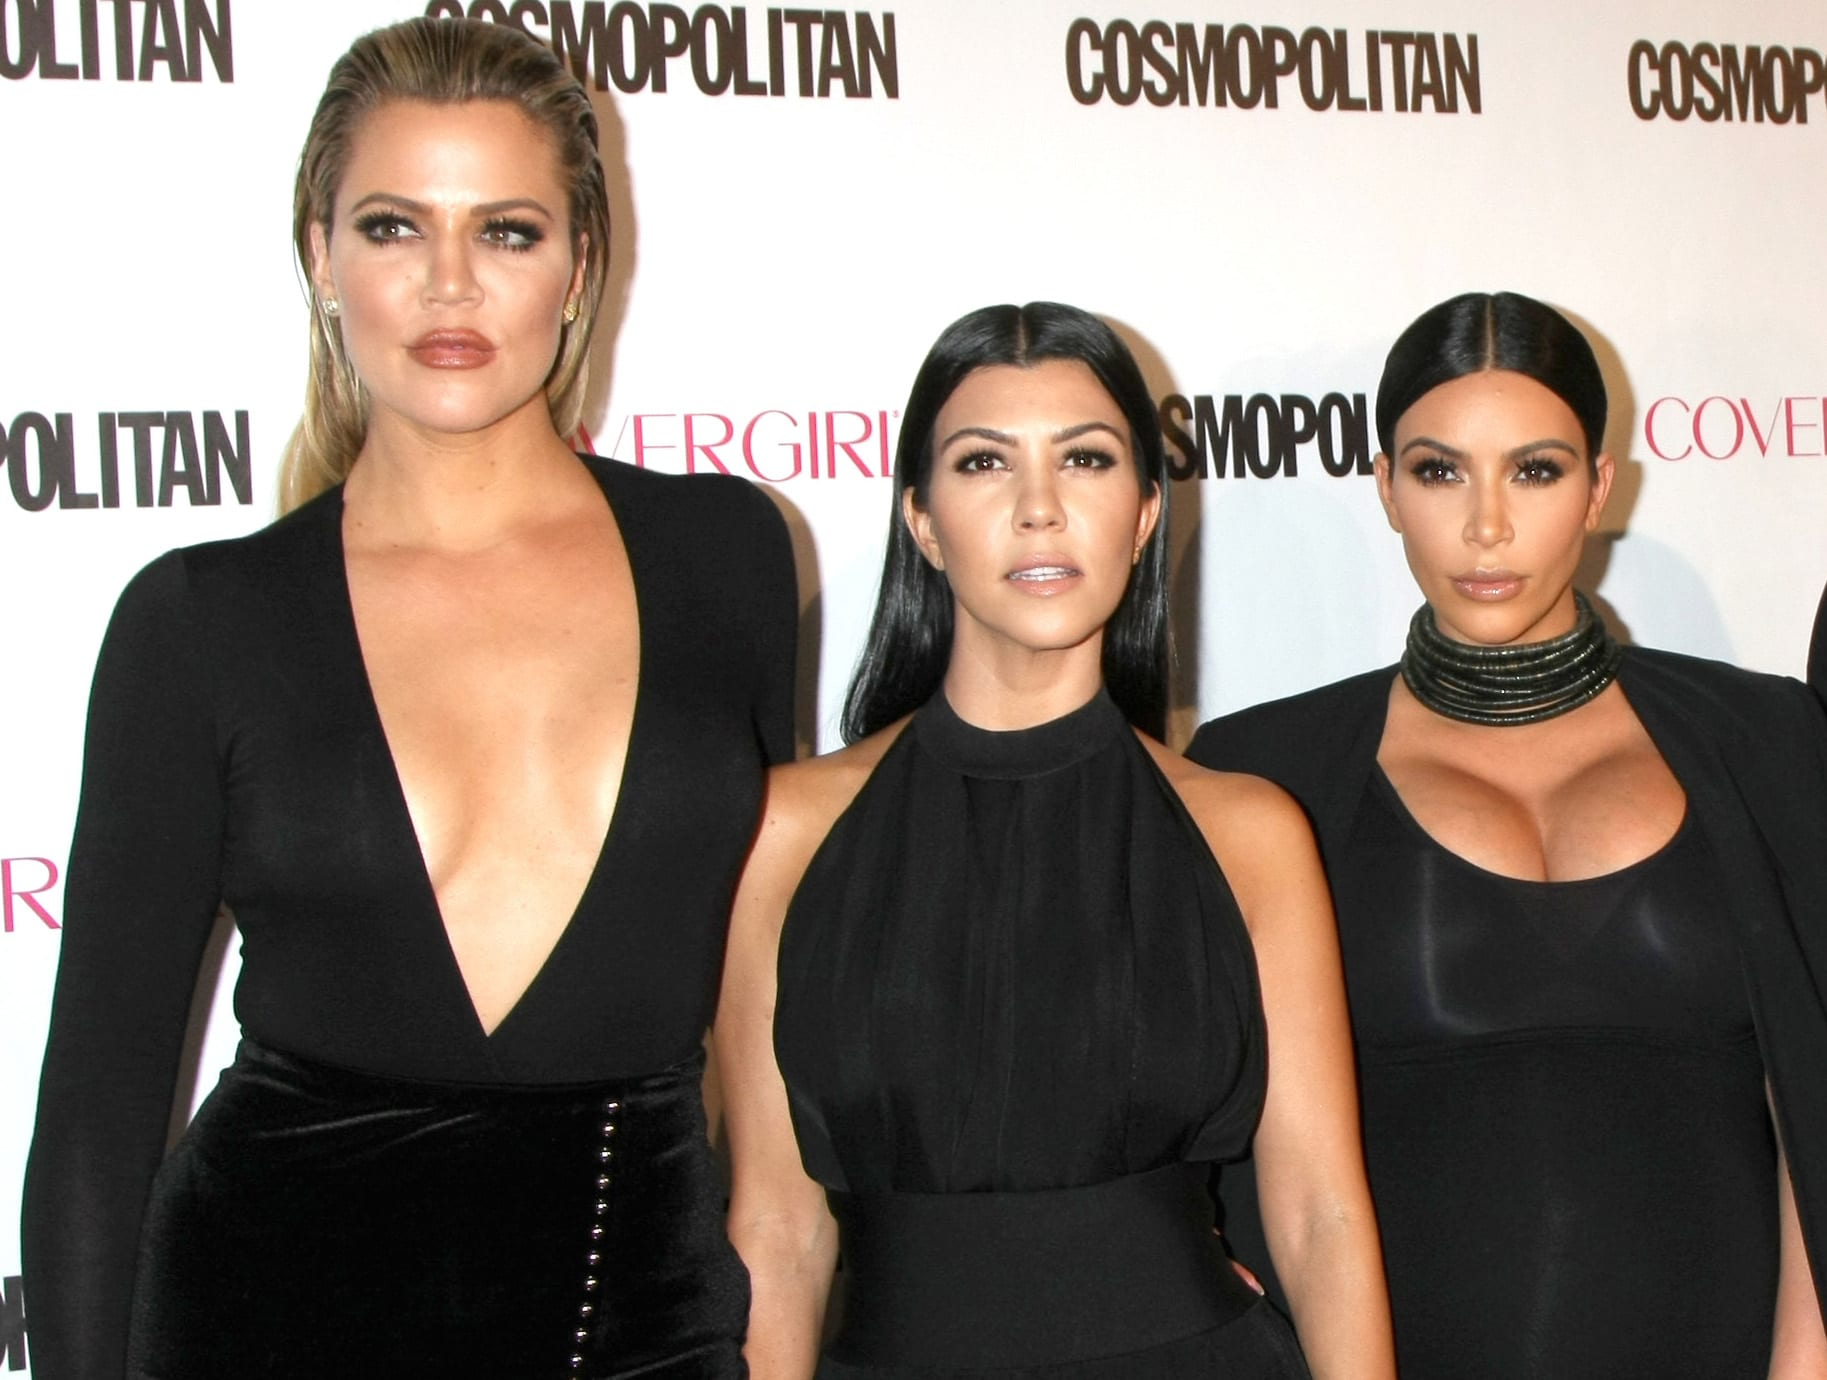 Khloé, Kourtney, and Kim Kardashian Got into a Heated Twitter Fight During KUWTK Khloé, Kourtney, and Kim Kardashian Got into a Heated Twitter Fight During KUWTK new foto